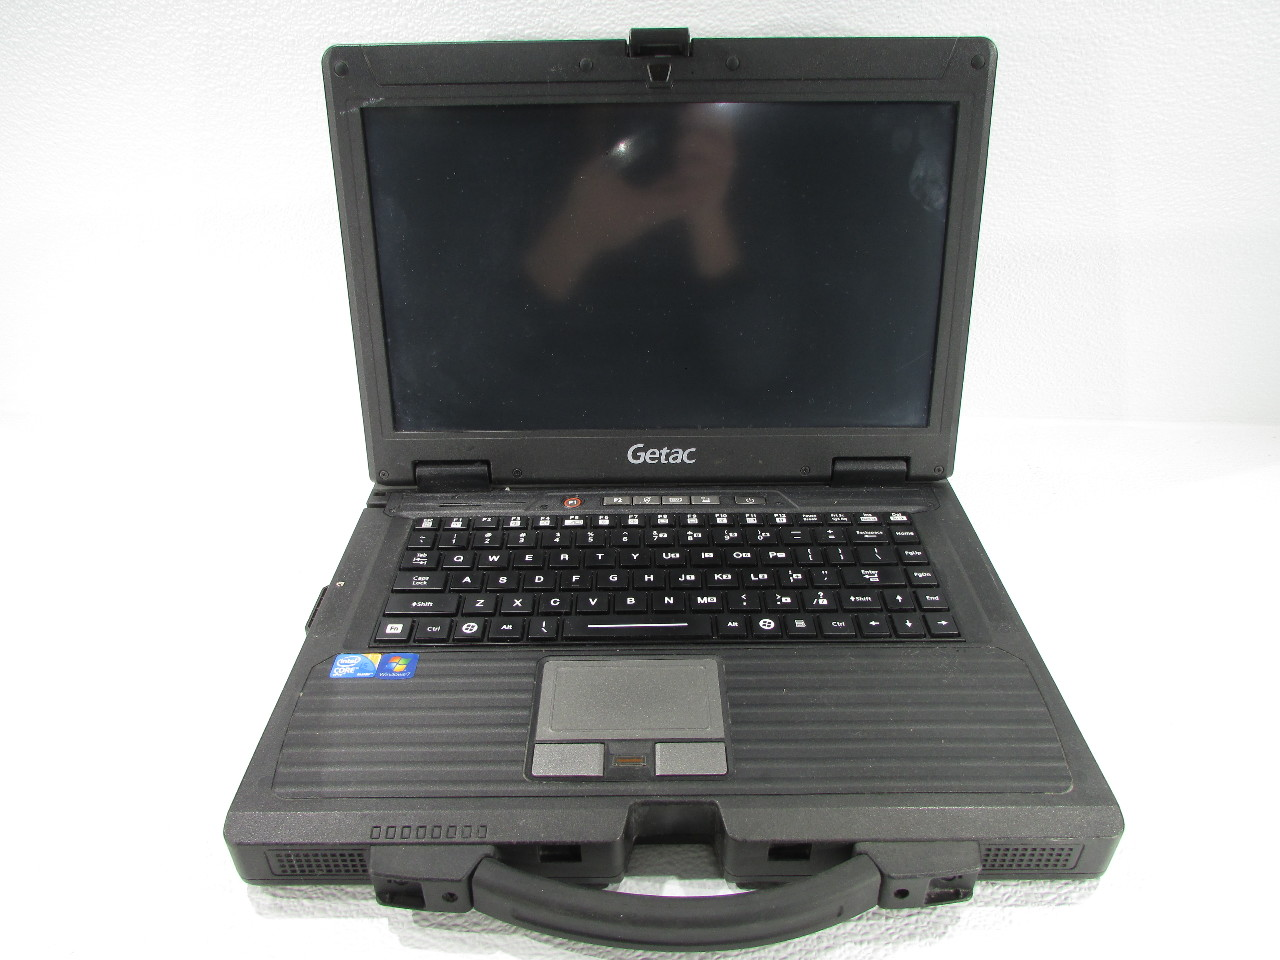 Getac S400 Toughbook I5 Intel Core Premier Equipment